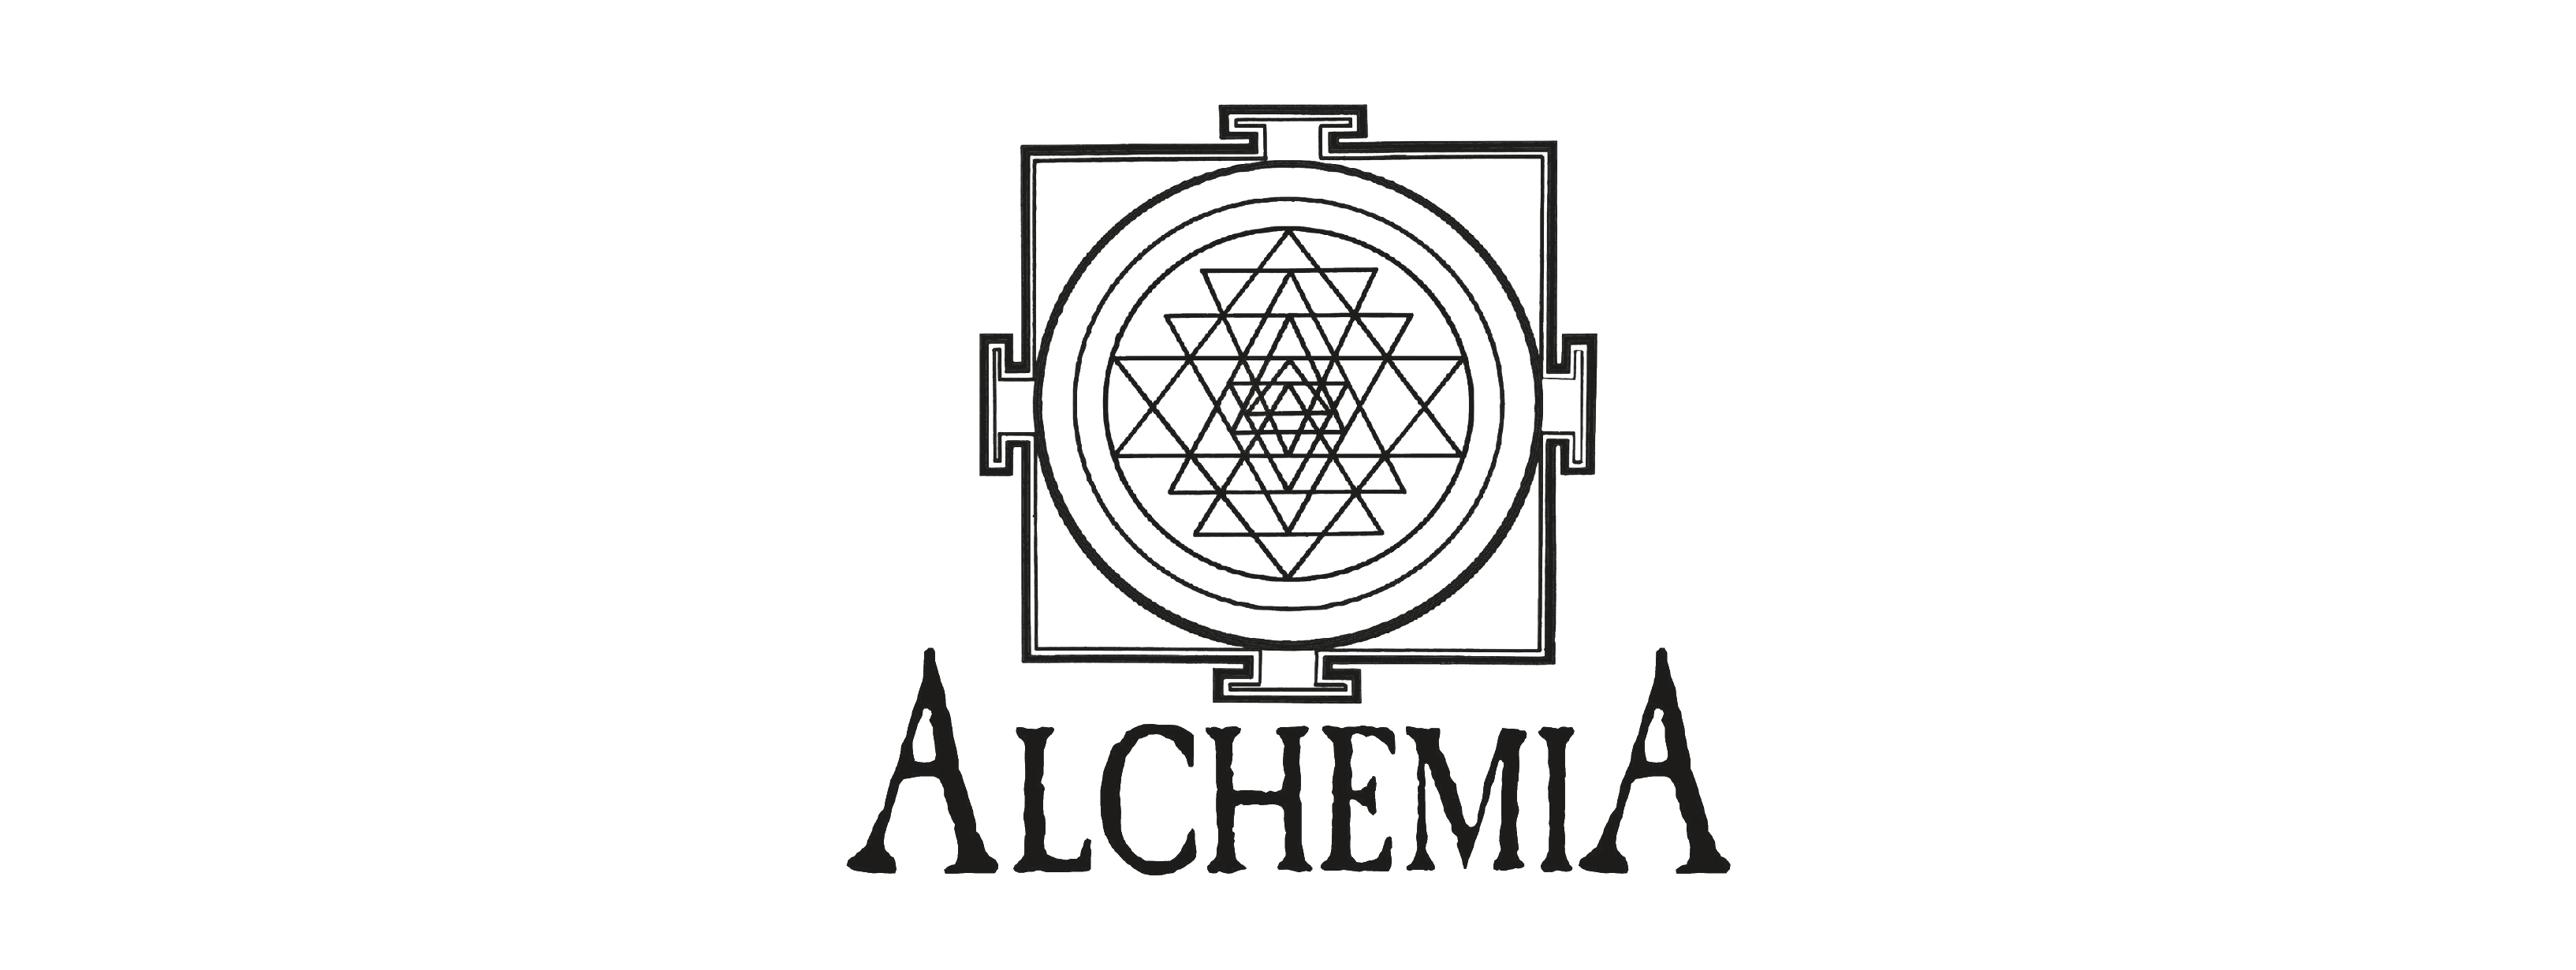 Alchemia club